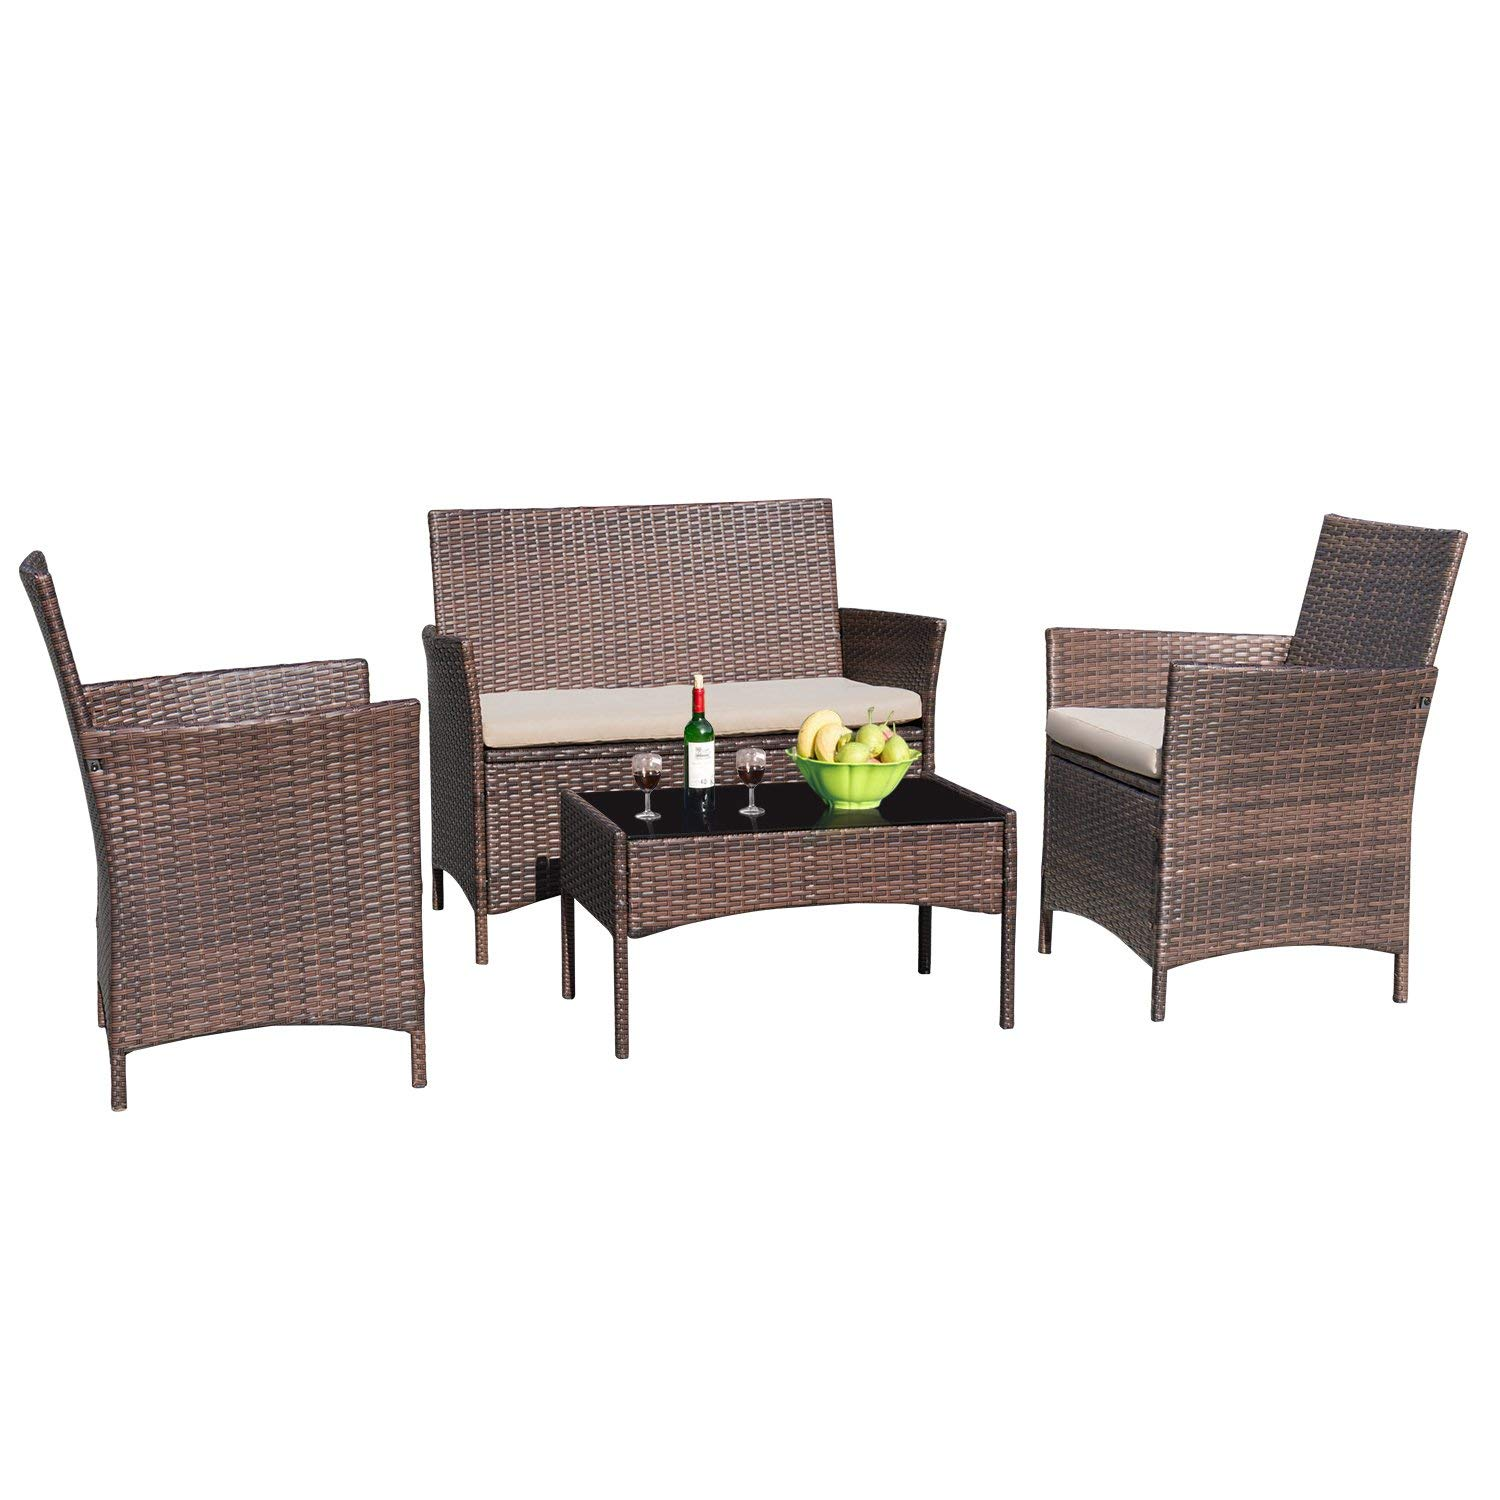 Devoko 4 Pieces Patio Porch Furniture Sets PE Rattan Wicker Chairs Beige Cushion with Table Outdoor Garden Patio Furniture Sets (Brown) by Devoko